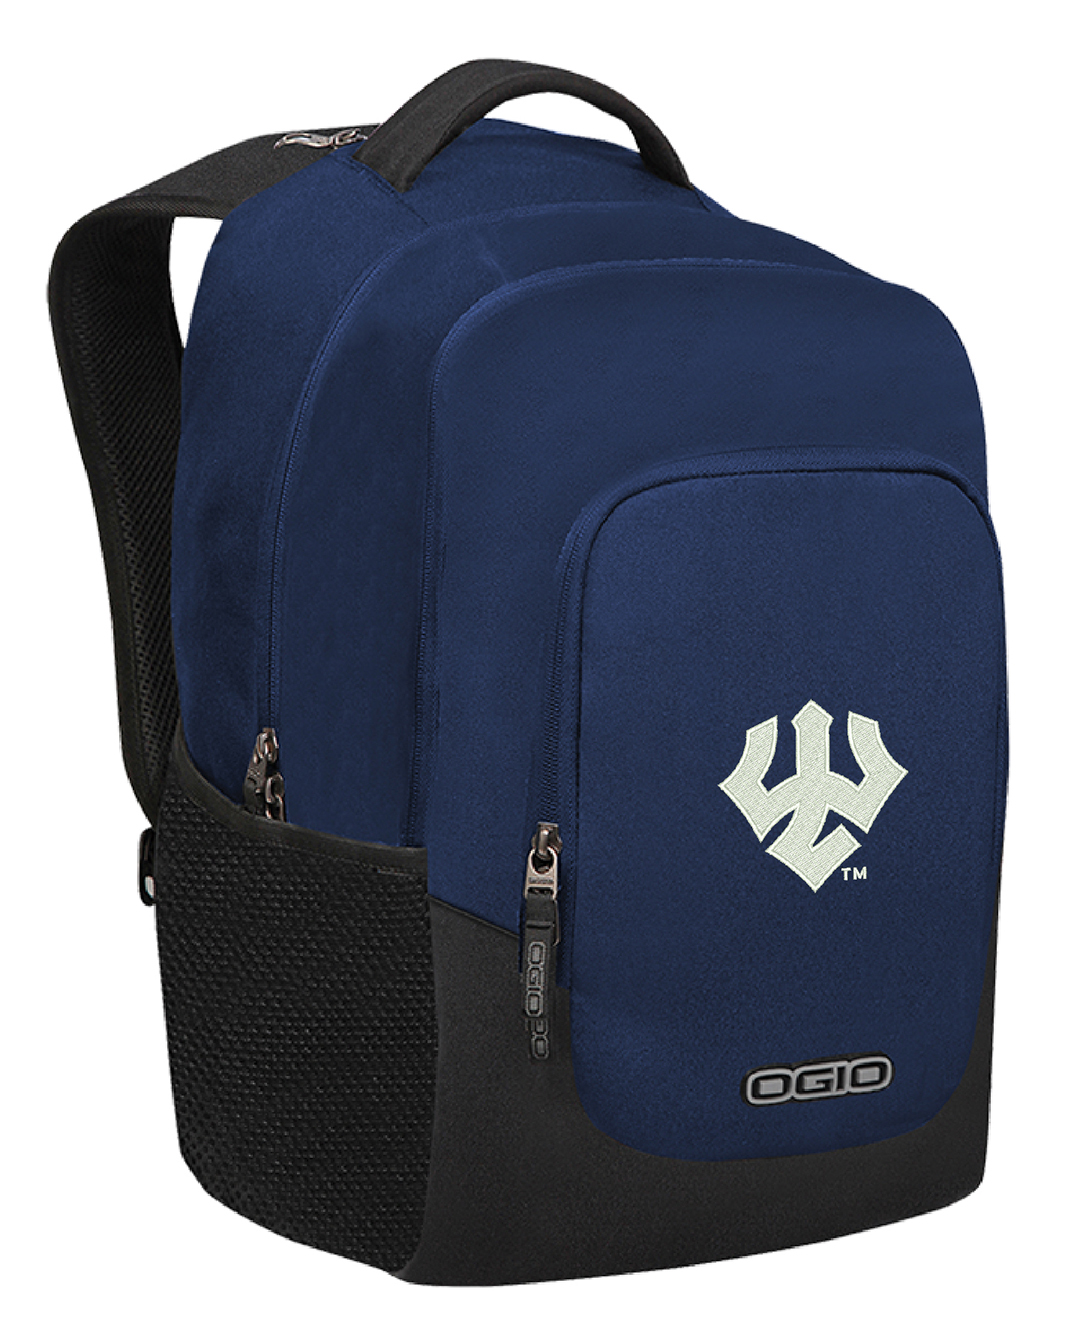 Ogio Evader Backpack